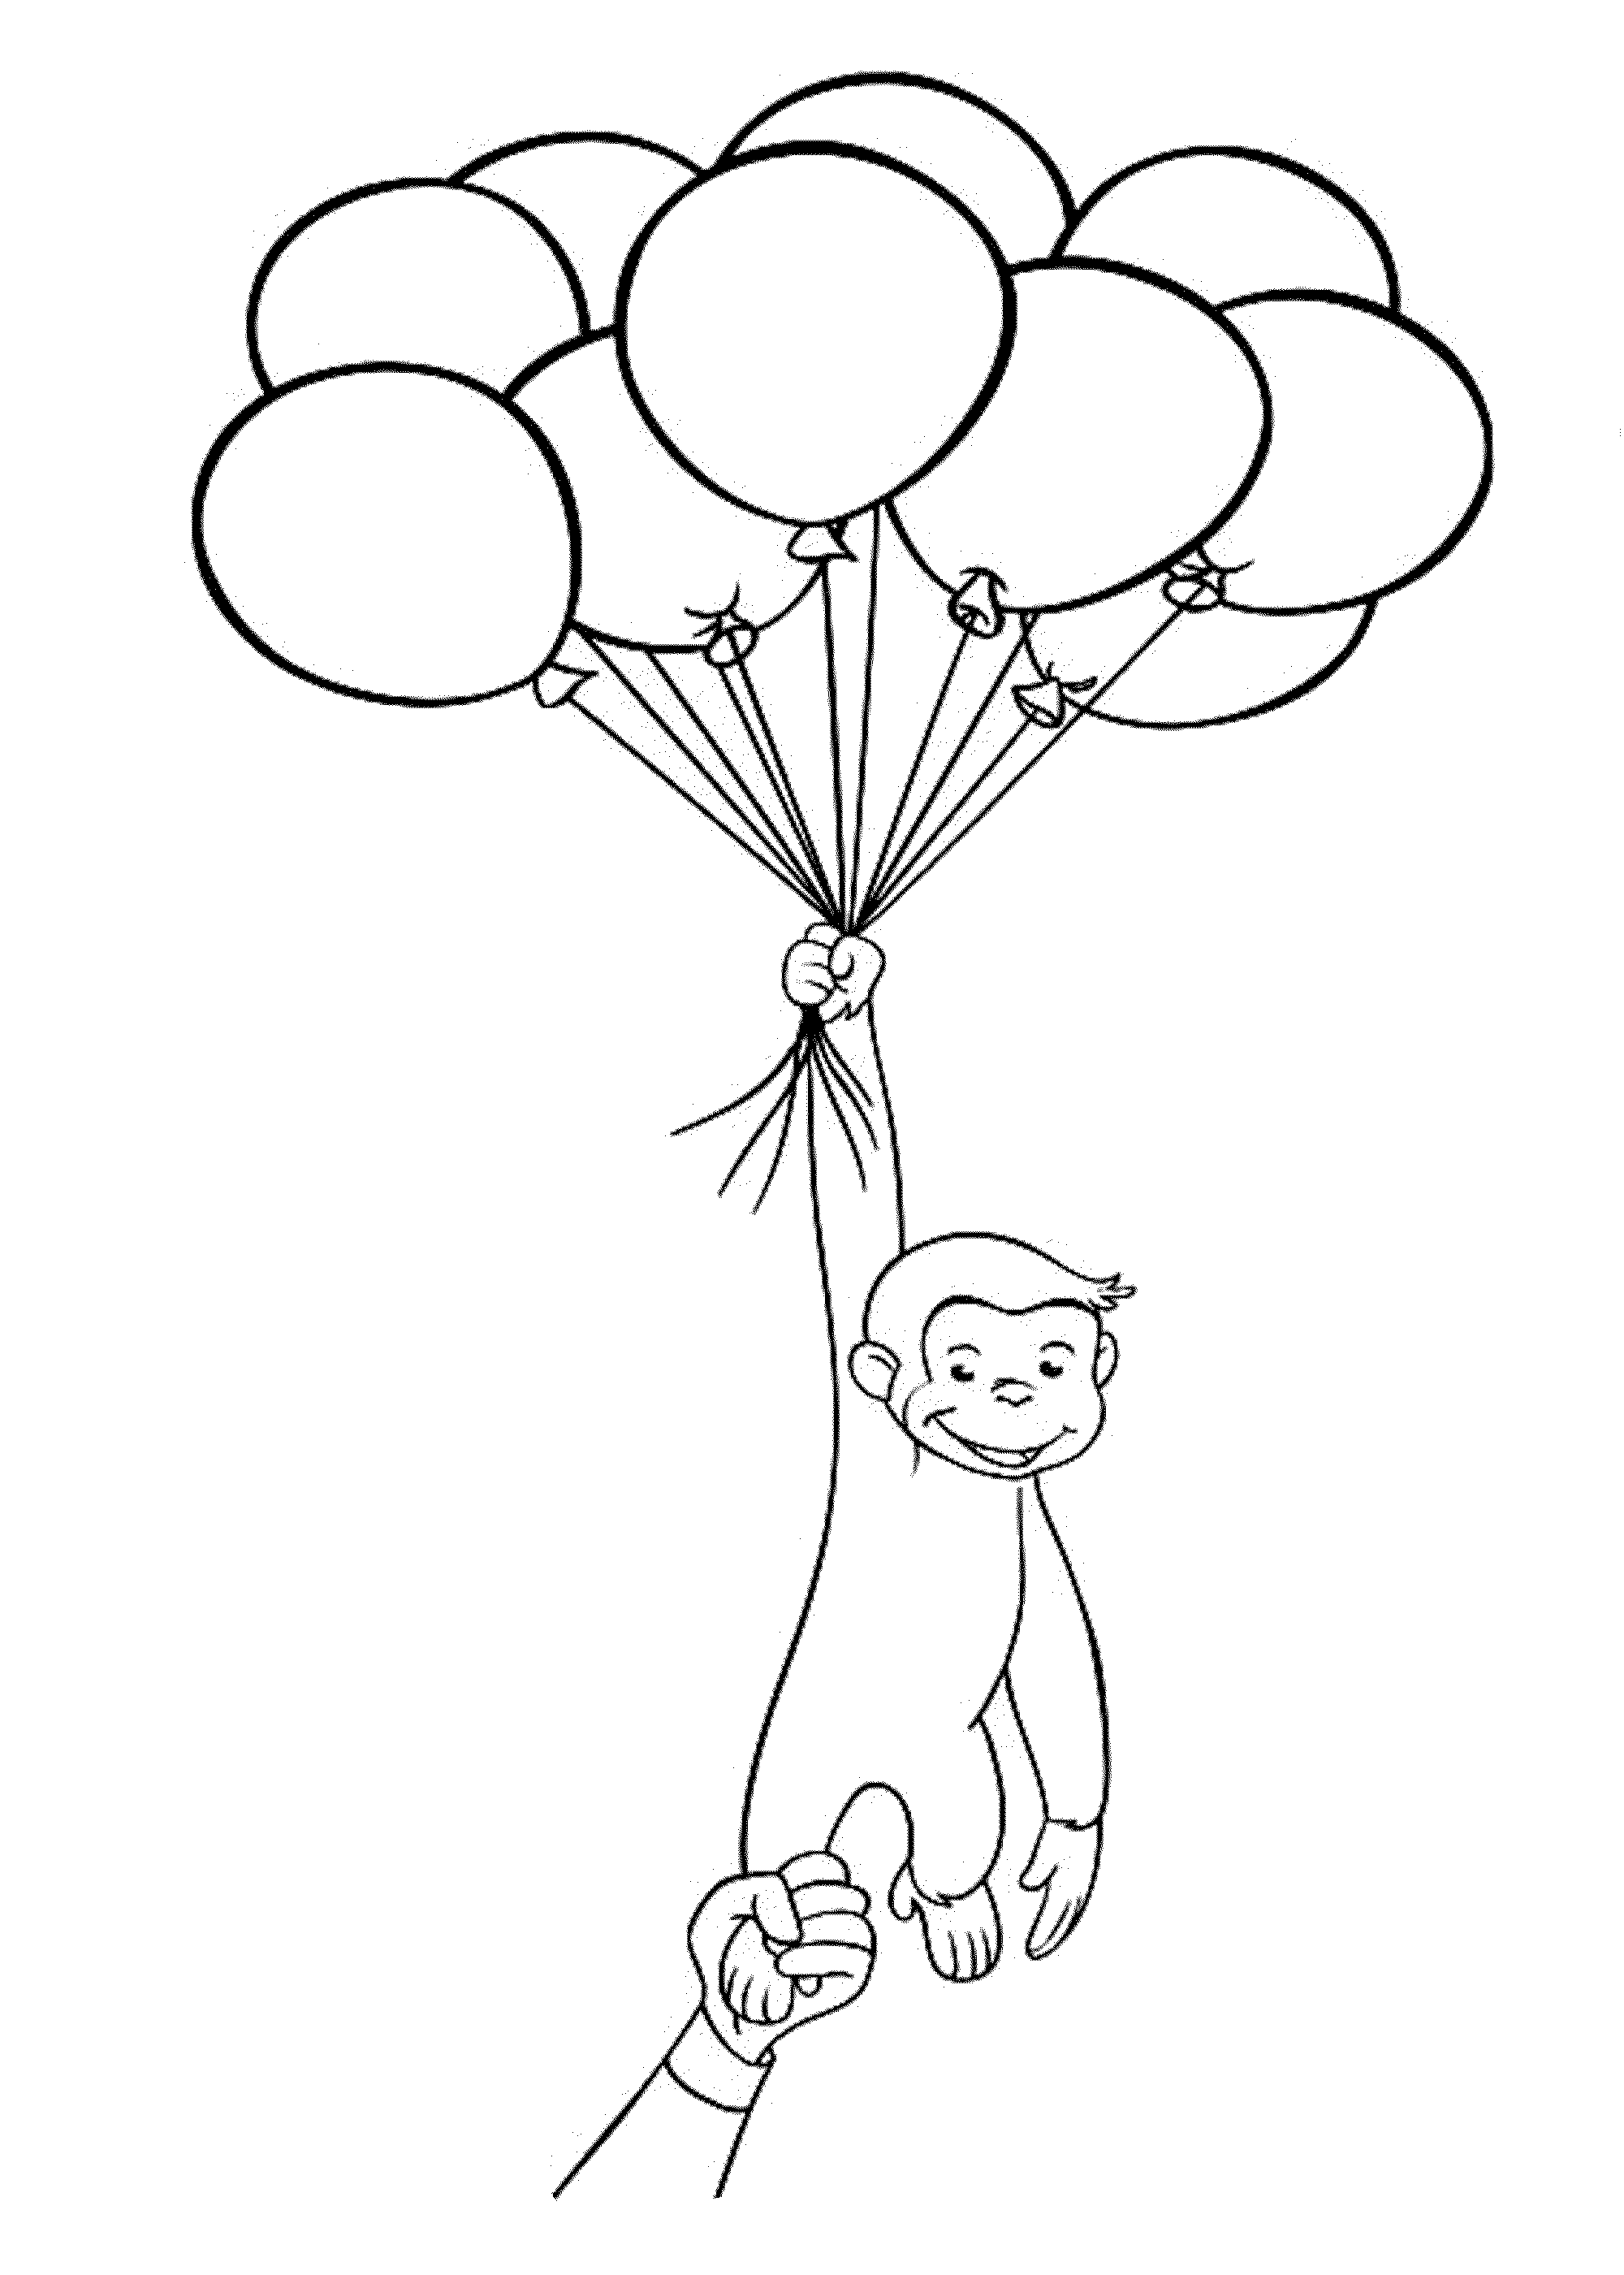 Curious George With Balloons Coloring Pages